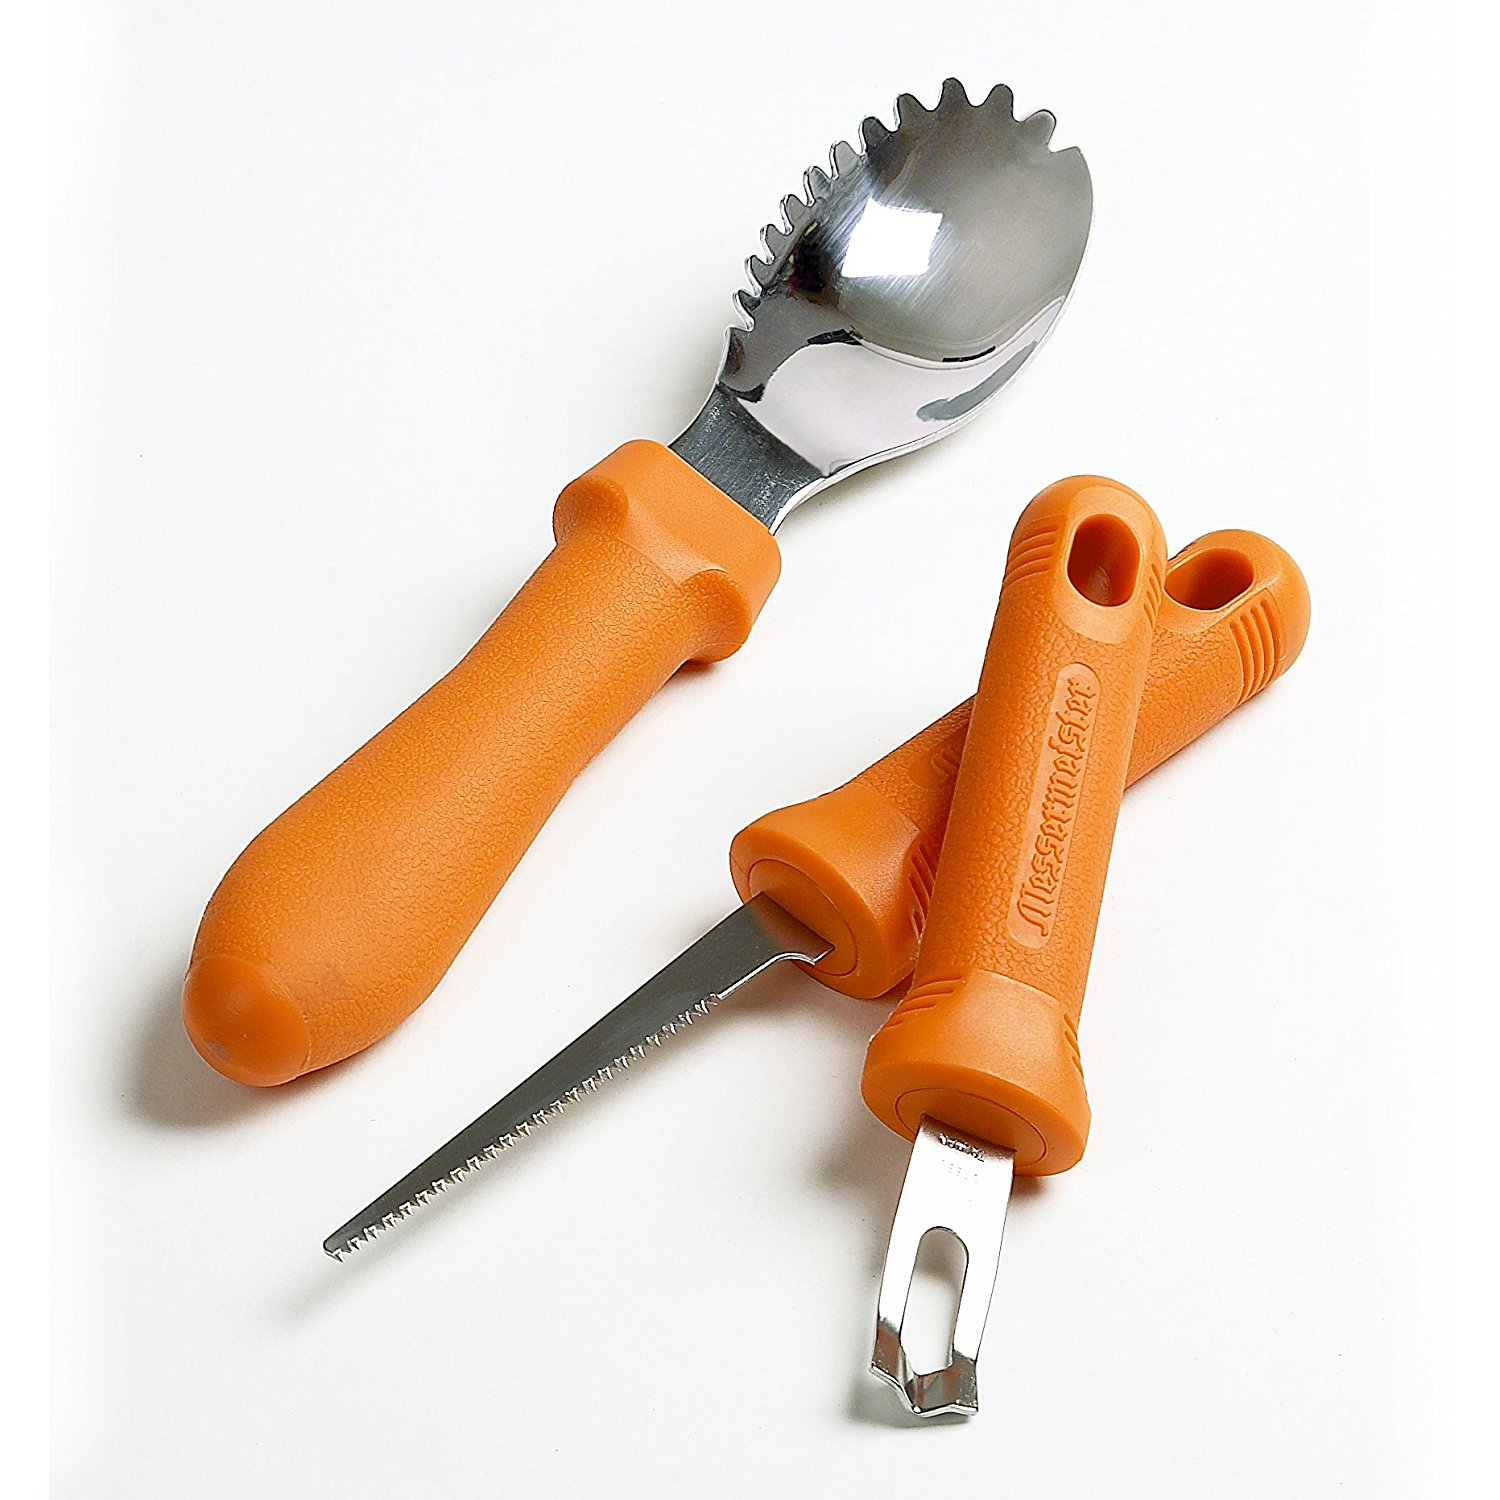 Messermeister Pumpkin Meister Orange Carving Kit - Available in 2 Designs